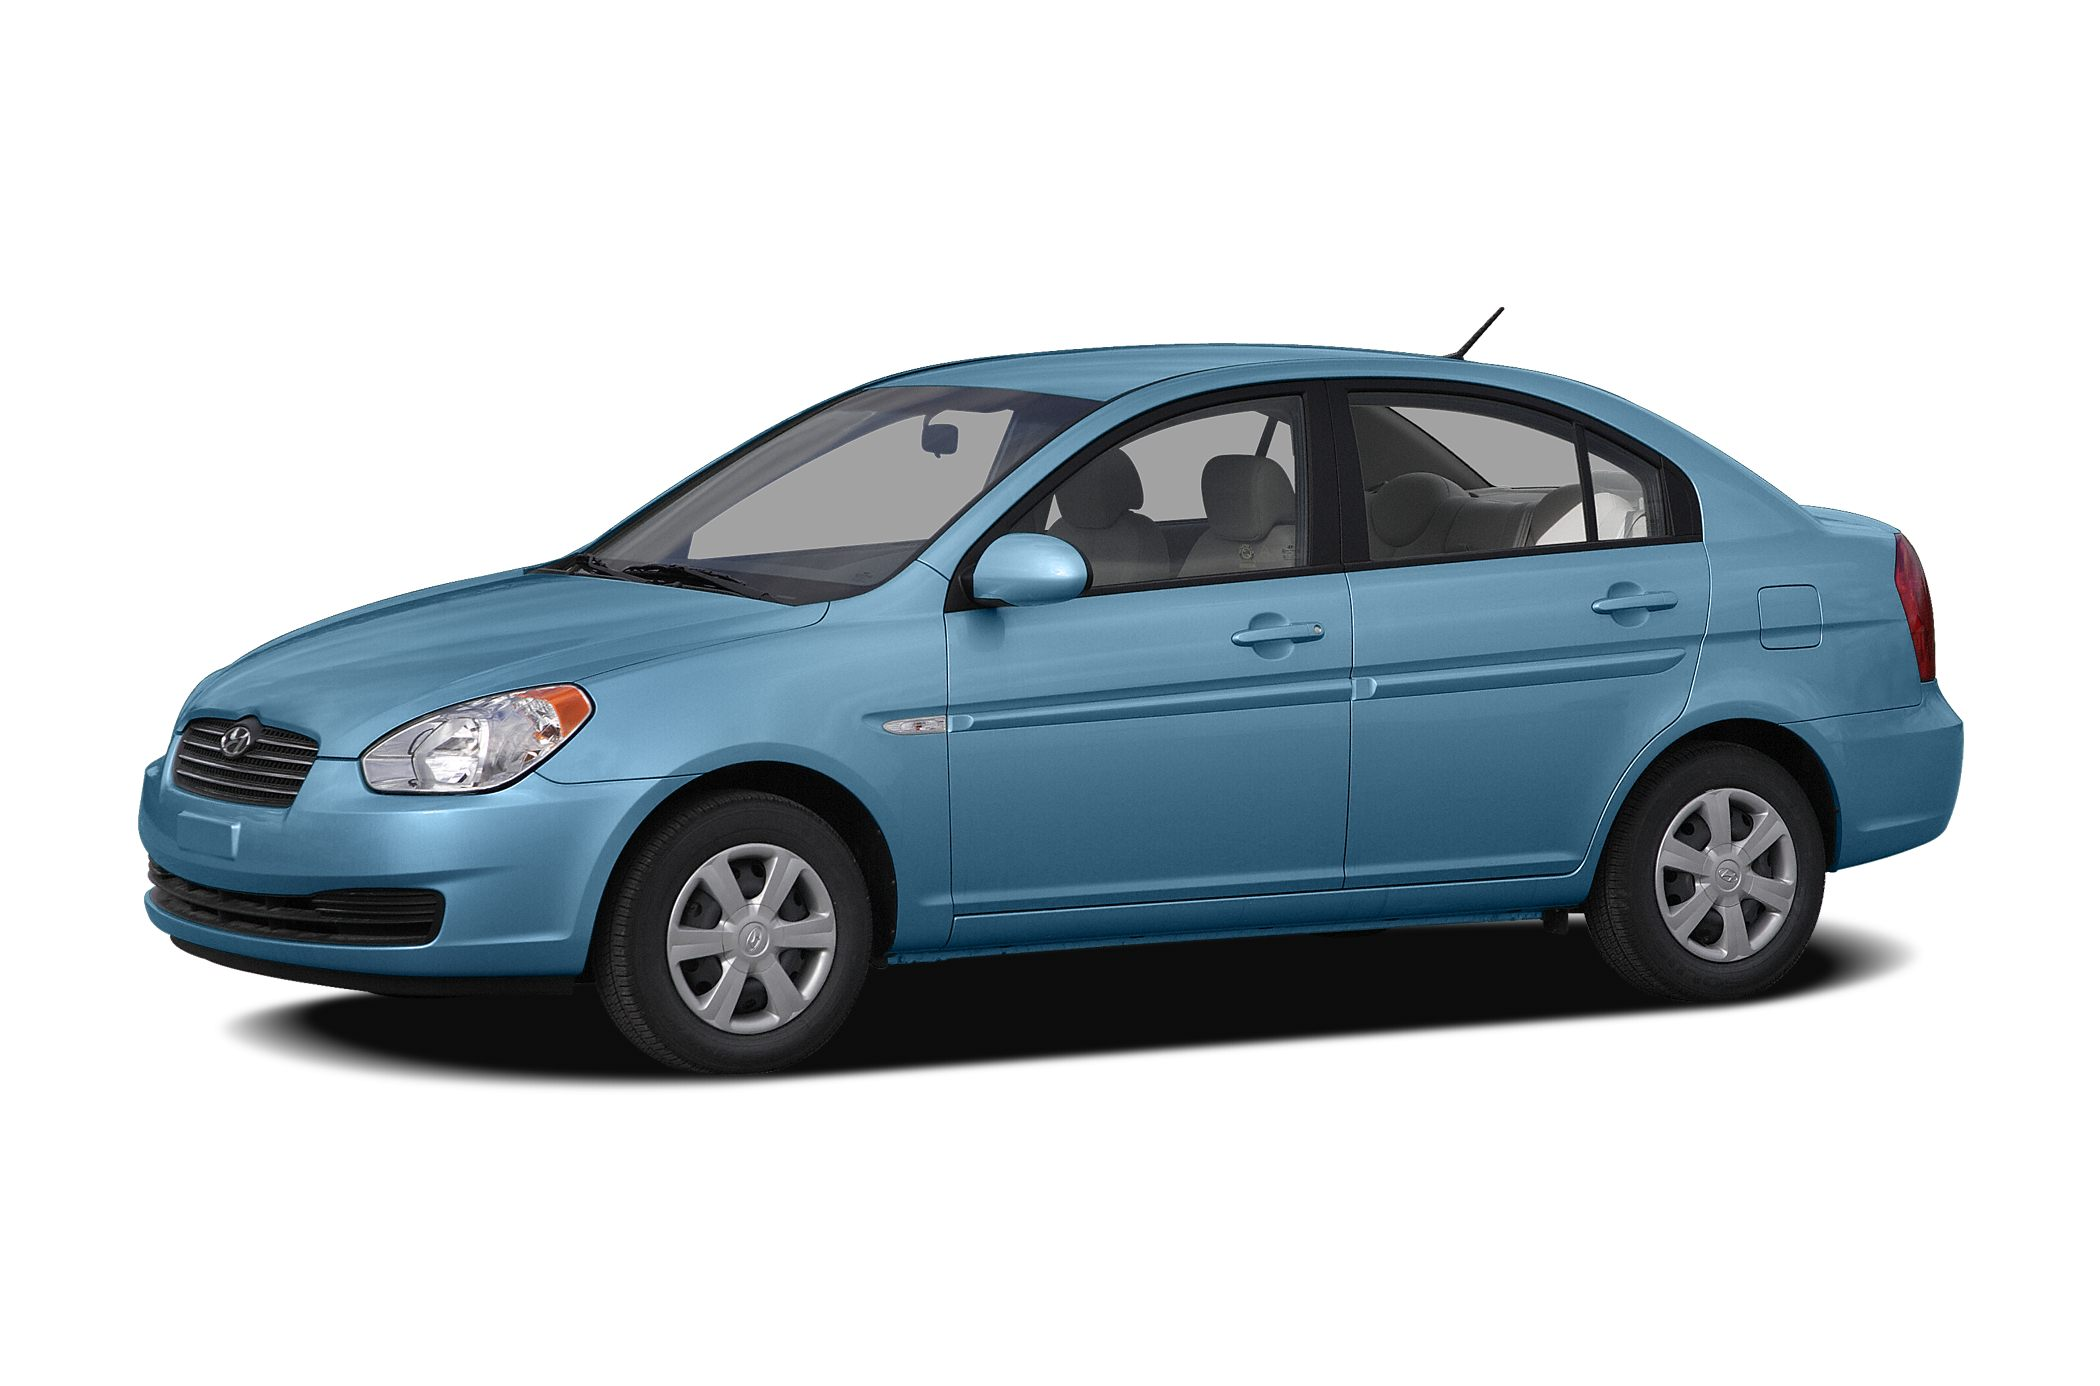 2008 Hyundai Accent GLS Sedan for sale in Marion for $7,900 with 49,223 miles.